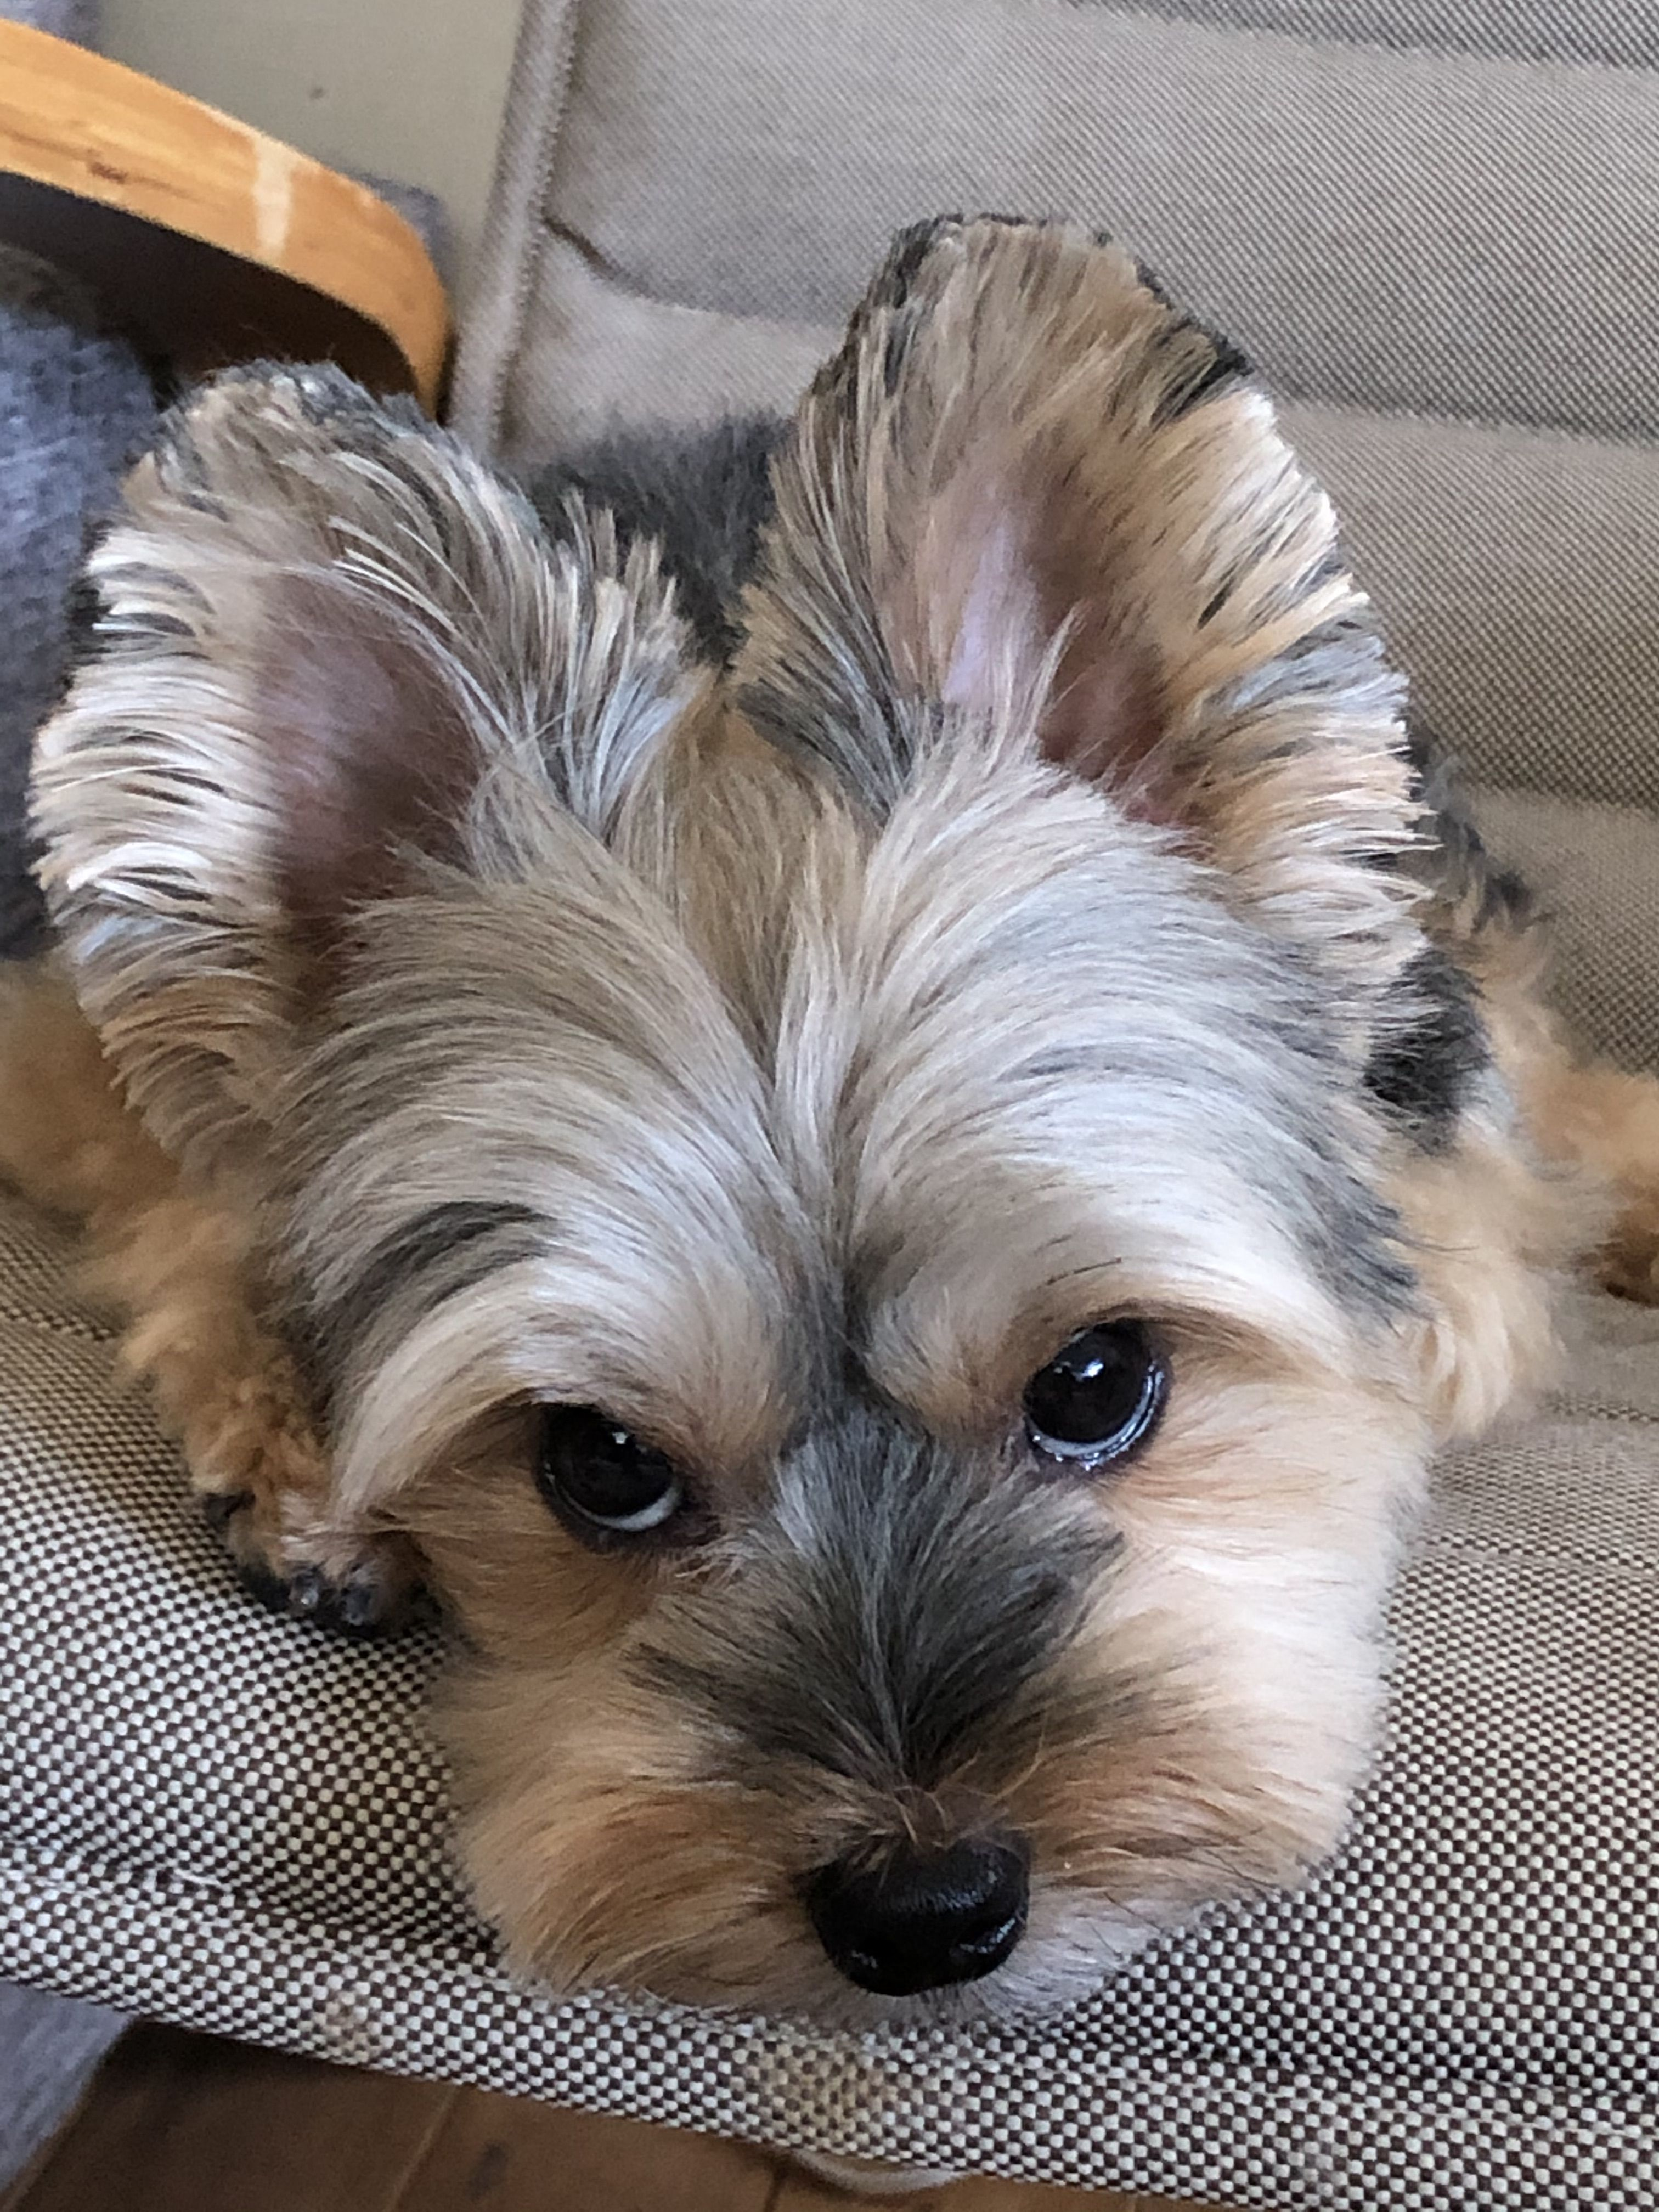 Pin By Ximena Diez On Yorkshire Terrier In 2020 Yorkshire Terrier Puppies Terrier